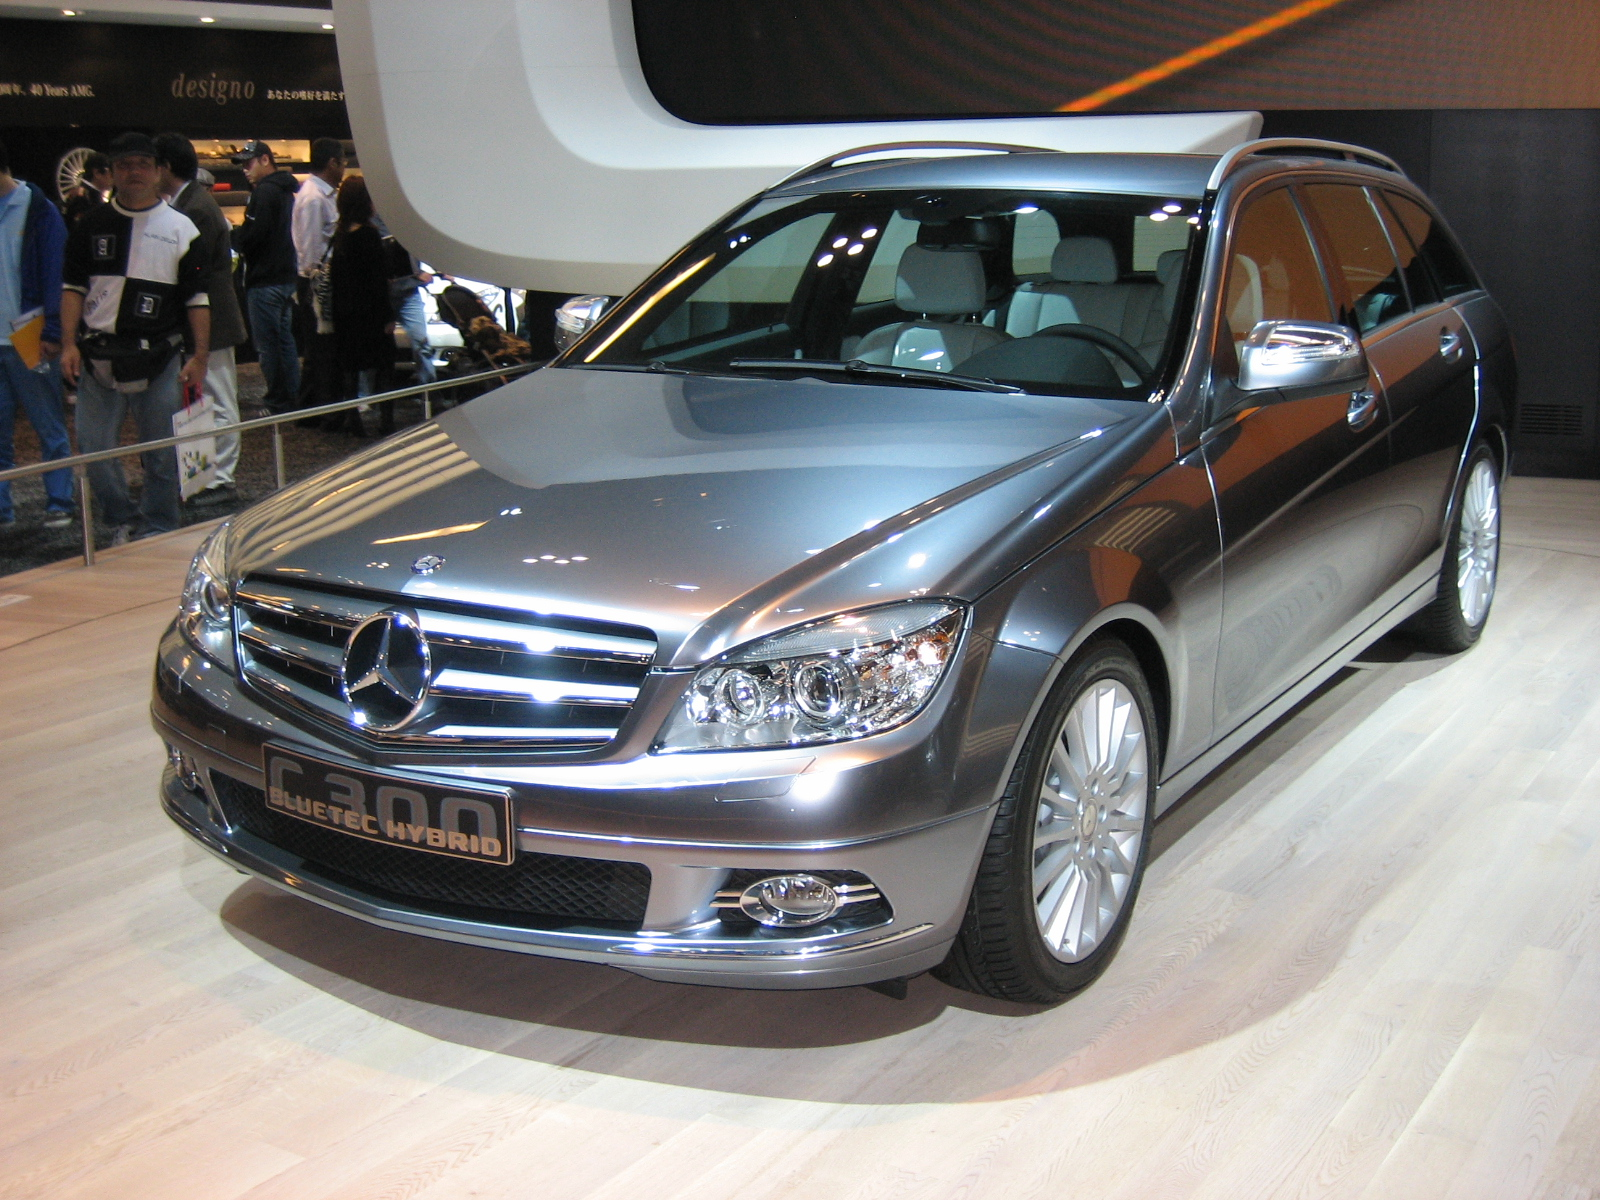 Mercedes-benz c300 photo - 4